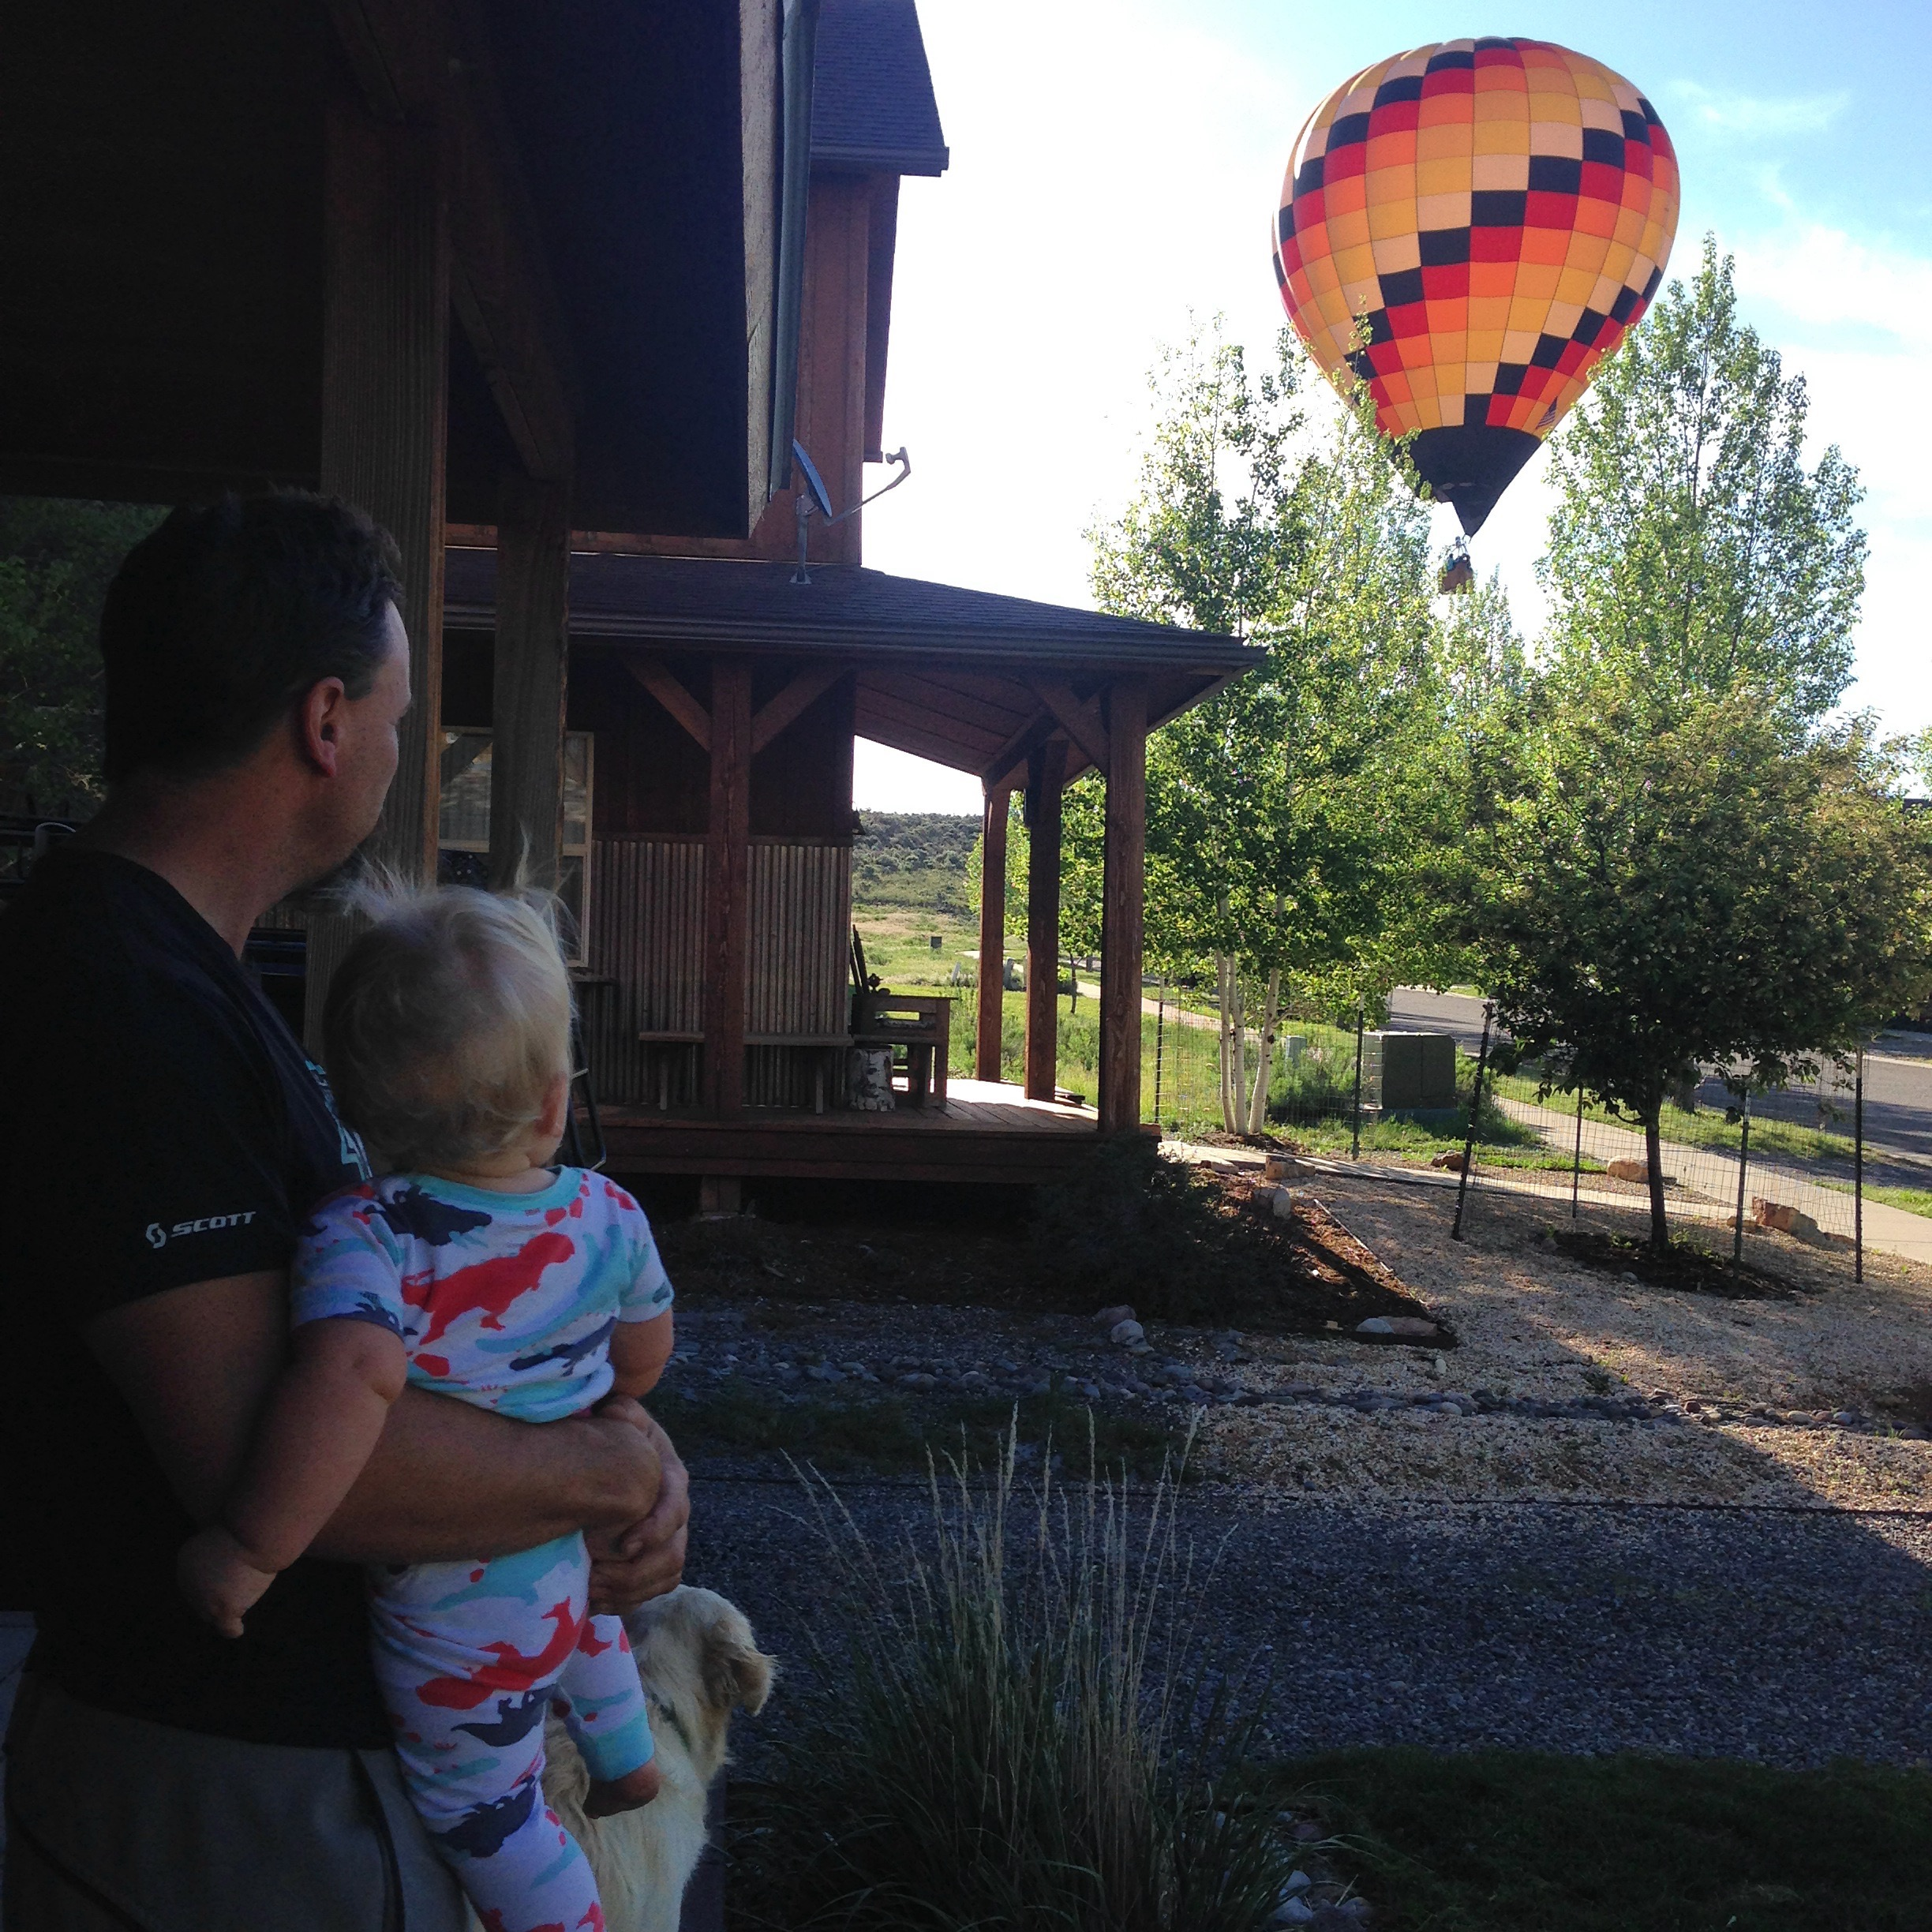 Slowing down to enjoy the morning balloons at home.